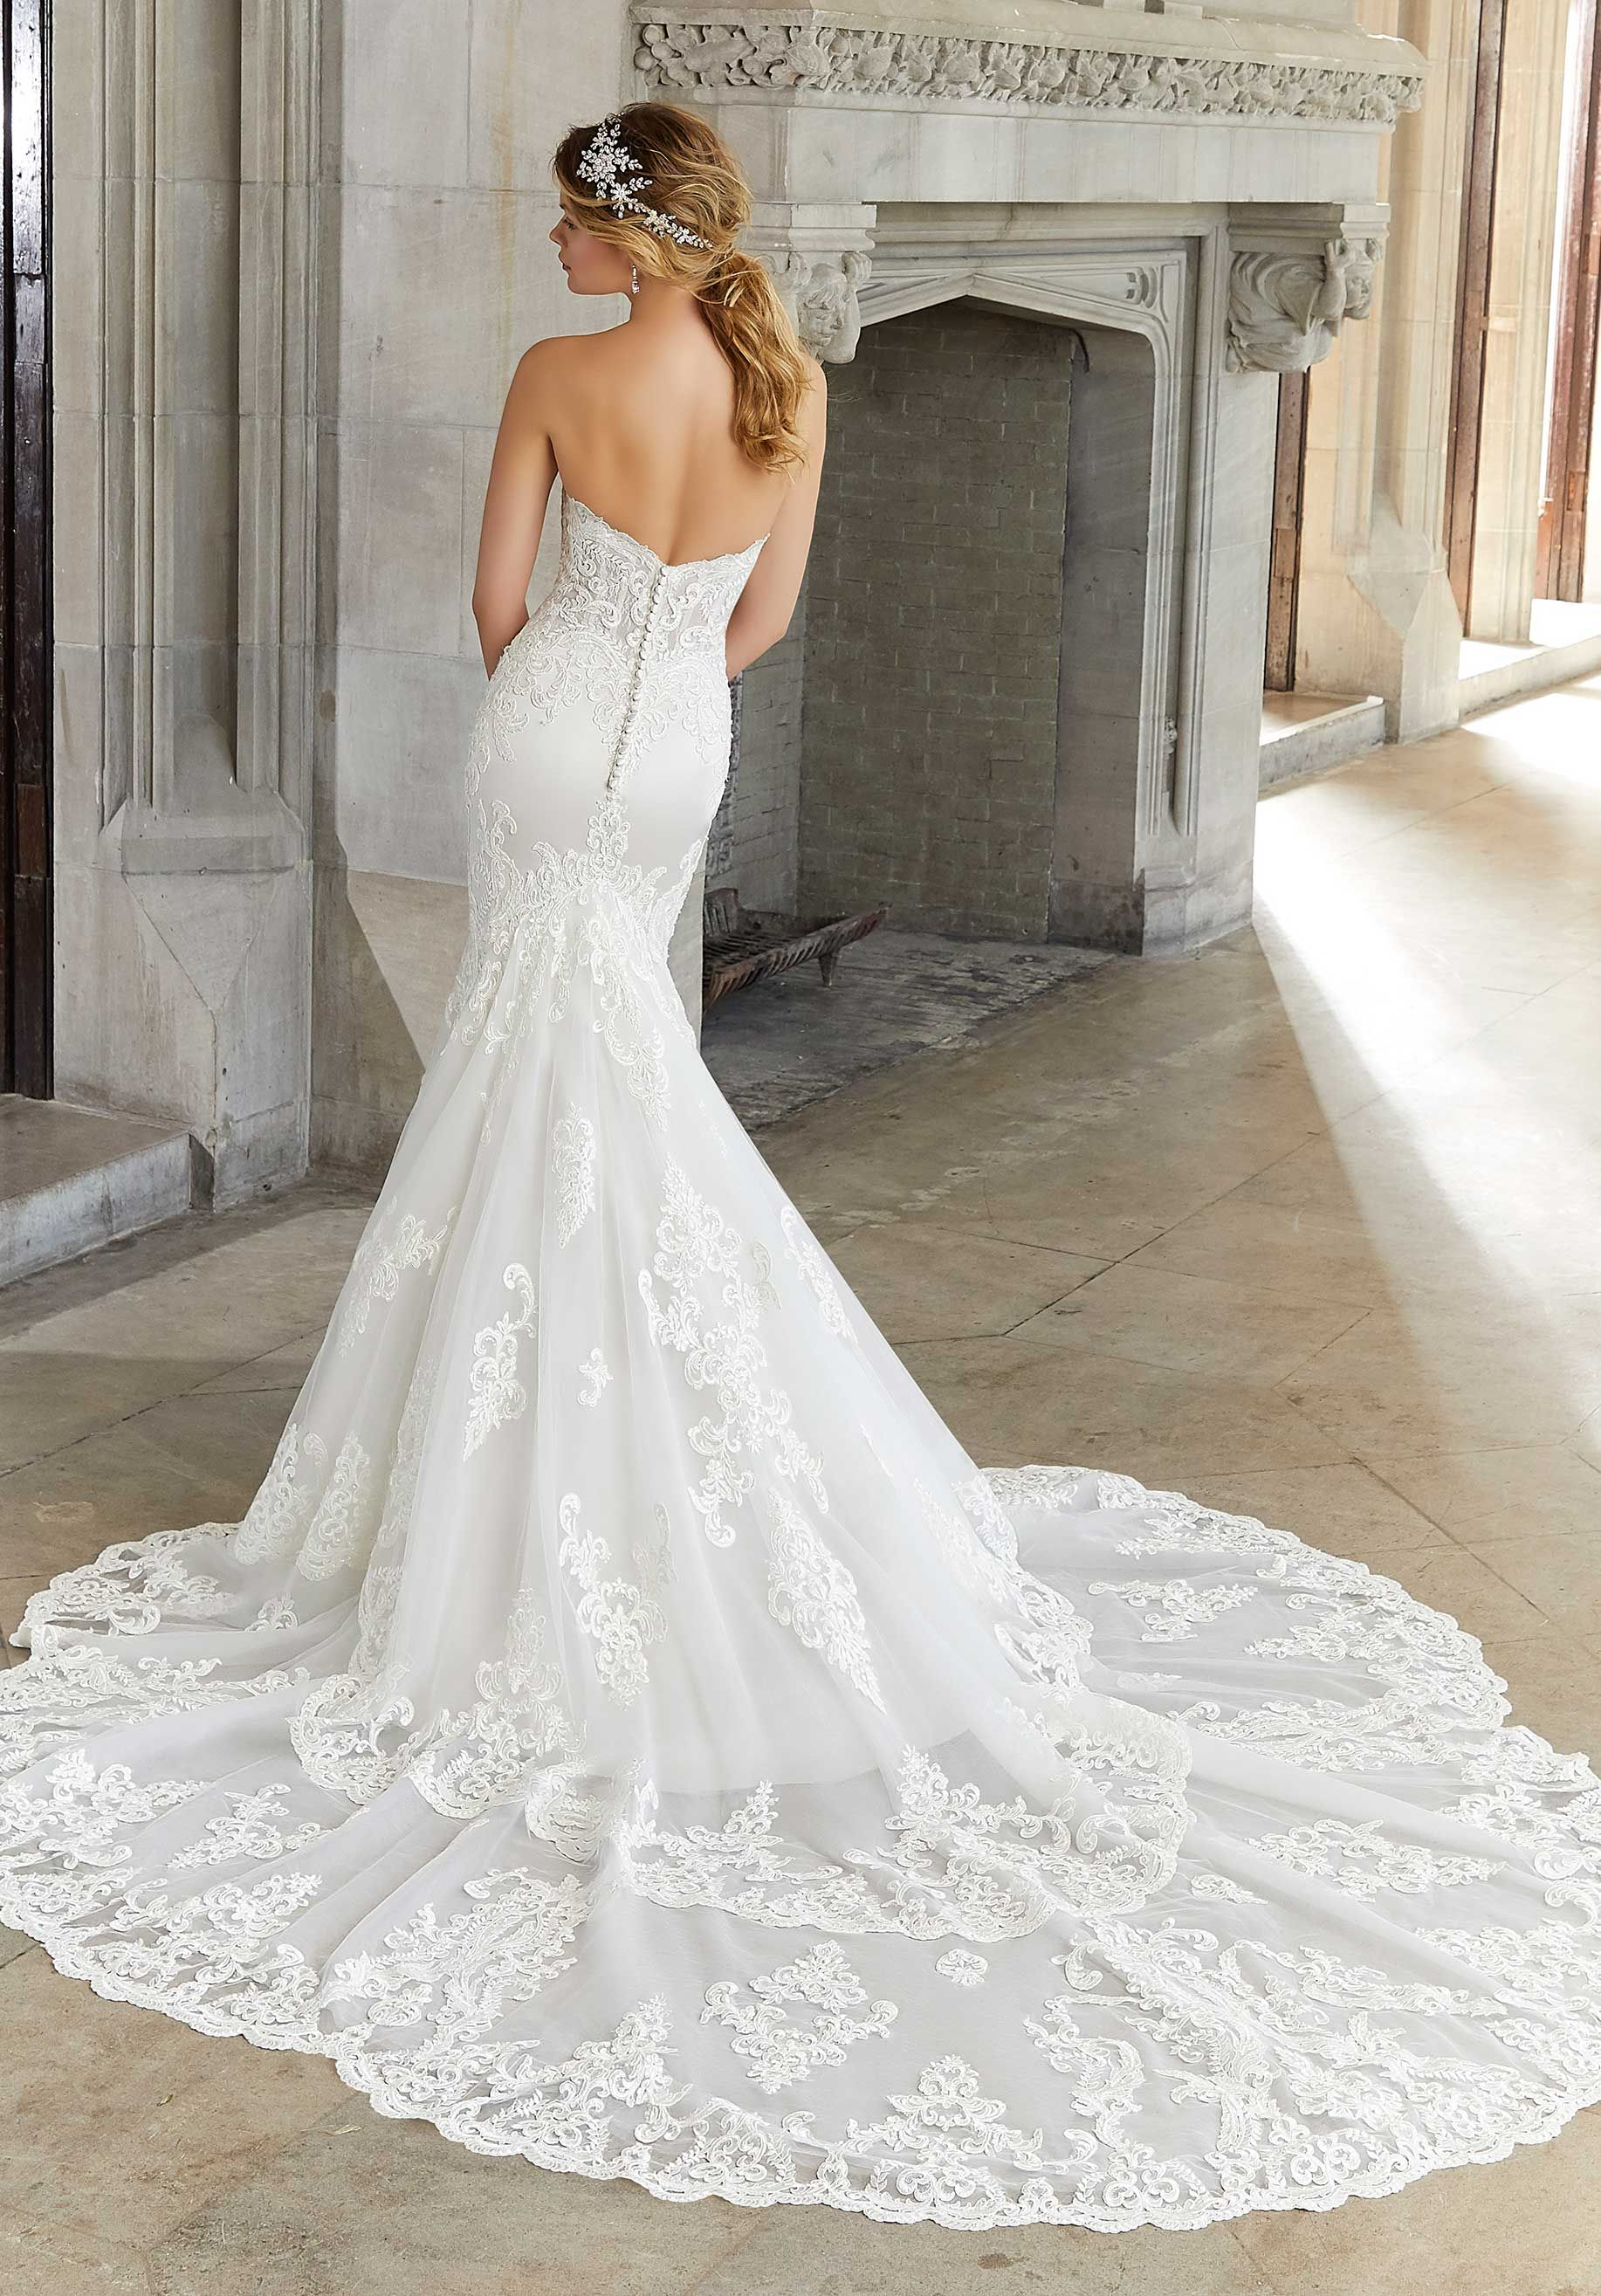 Lace And Satin Mermaid Wedding Gown Wedding Dresses Designer Wedding Dresses Bridal Gowns [ 2630 x 1834 Pixel ]